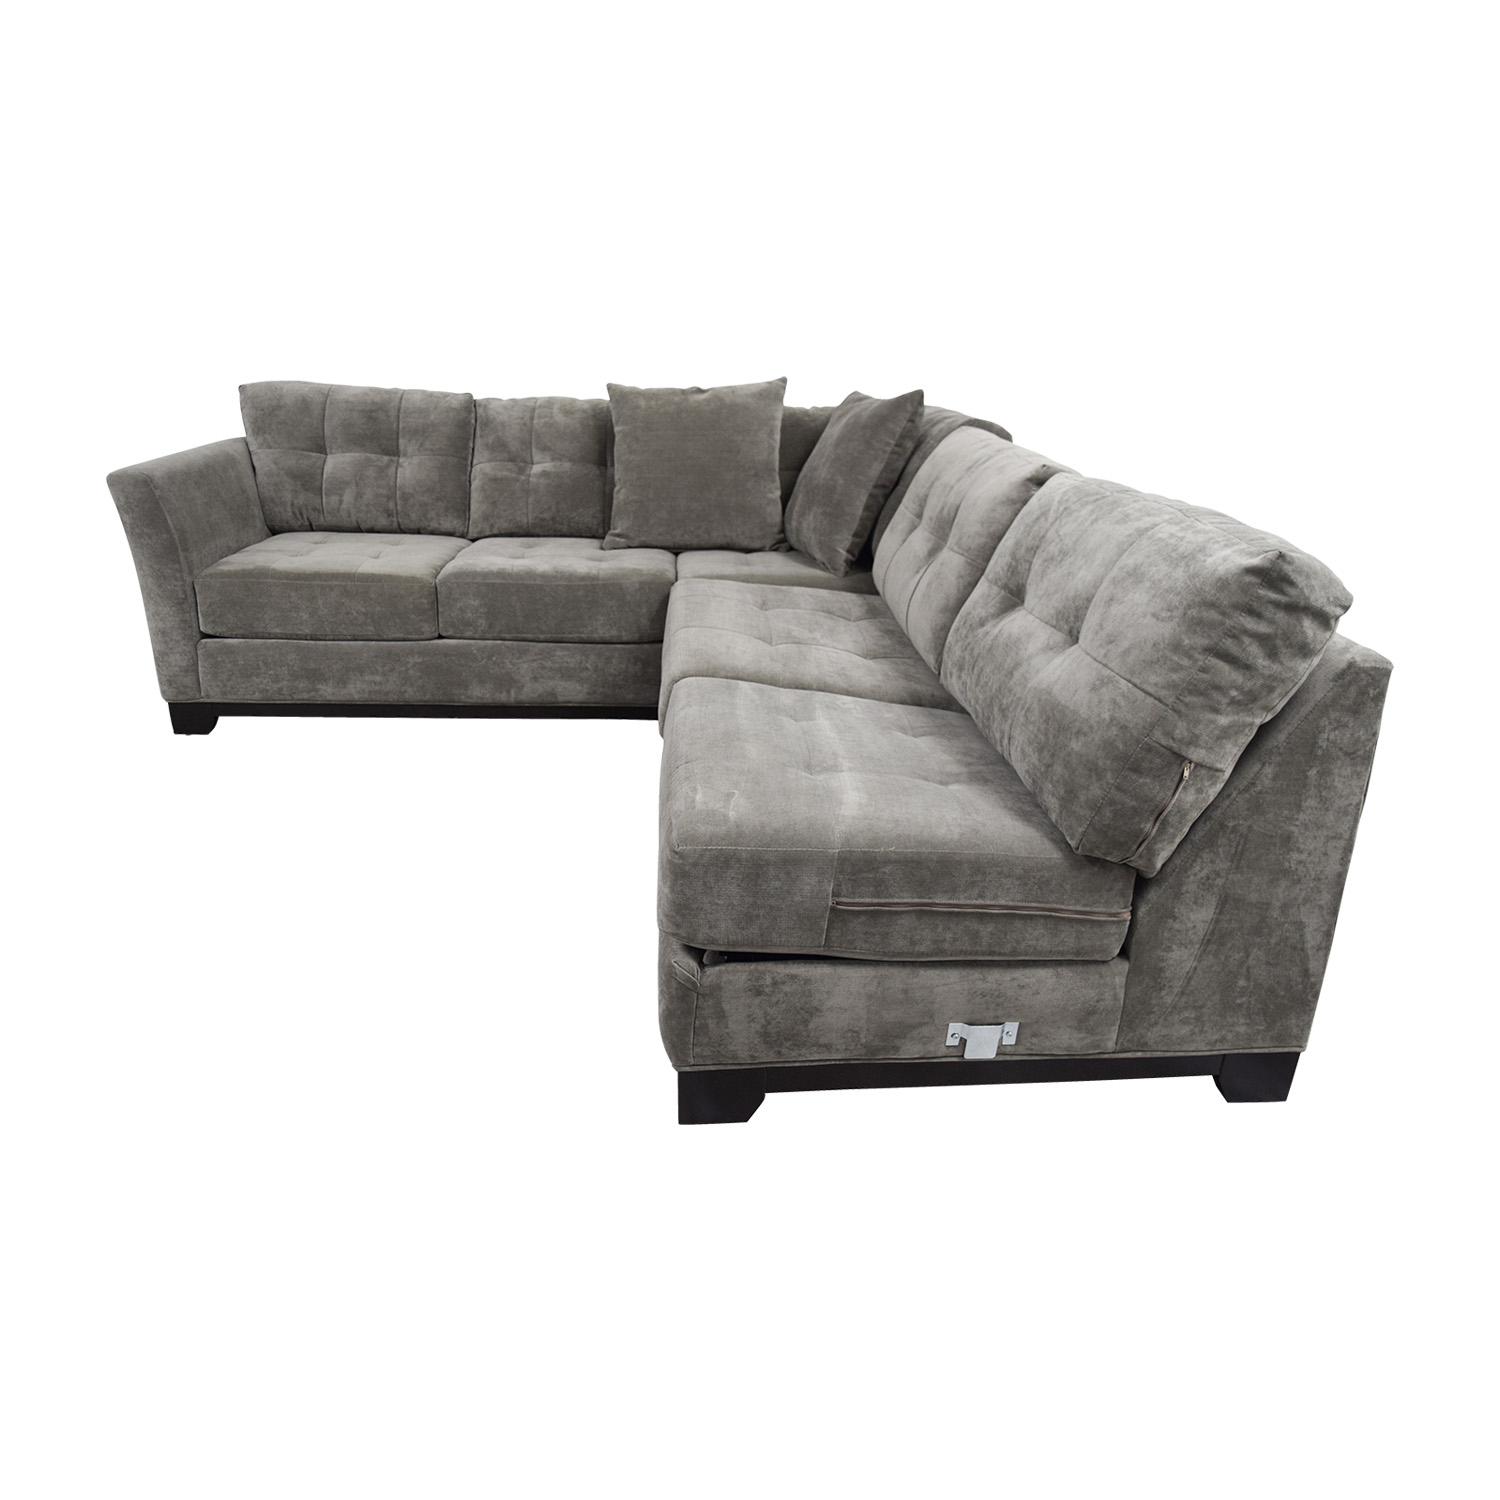 74 off macy s macy s gypsy grey l shaped sleeper sectional sofas